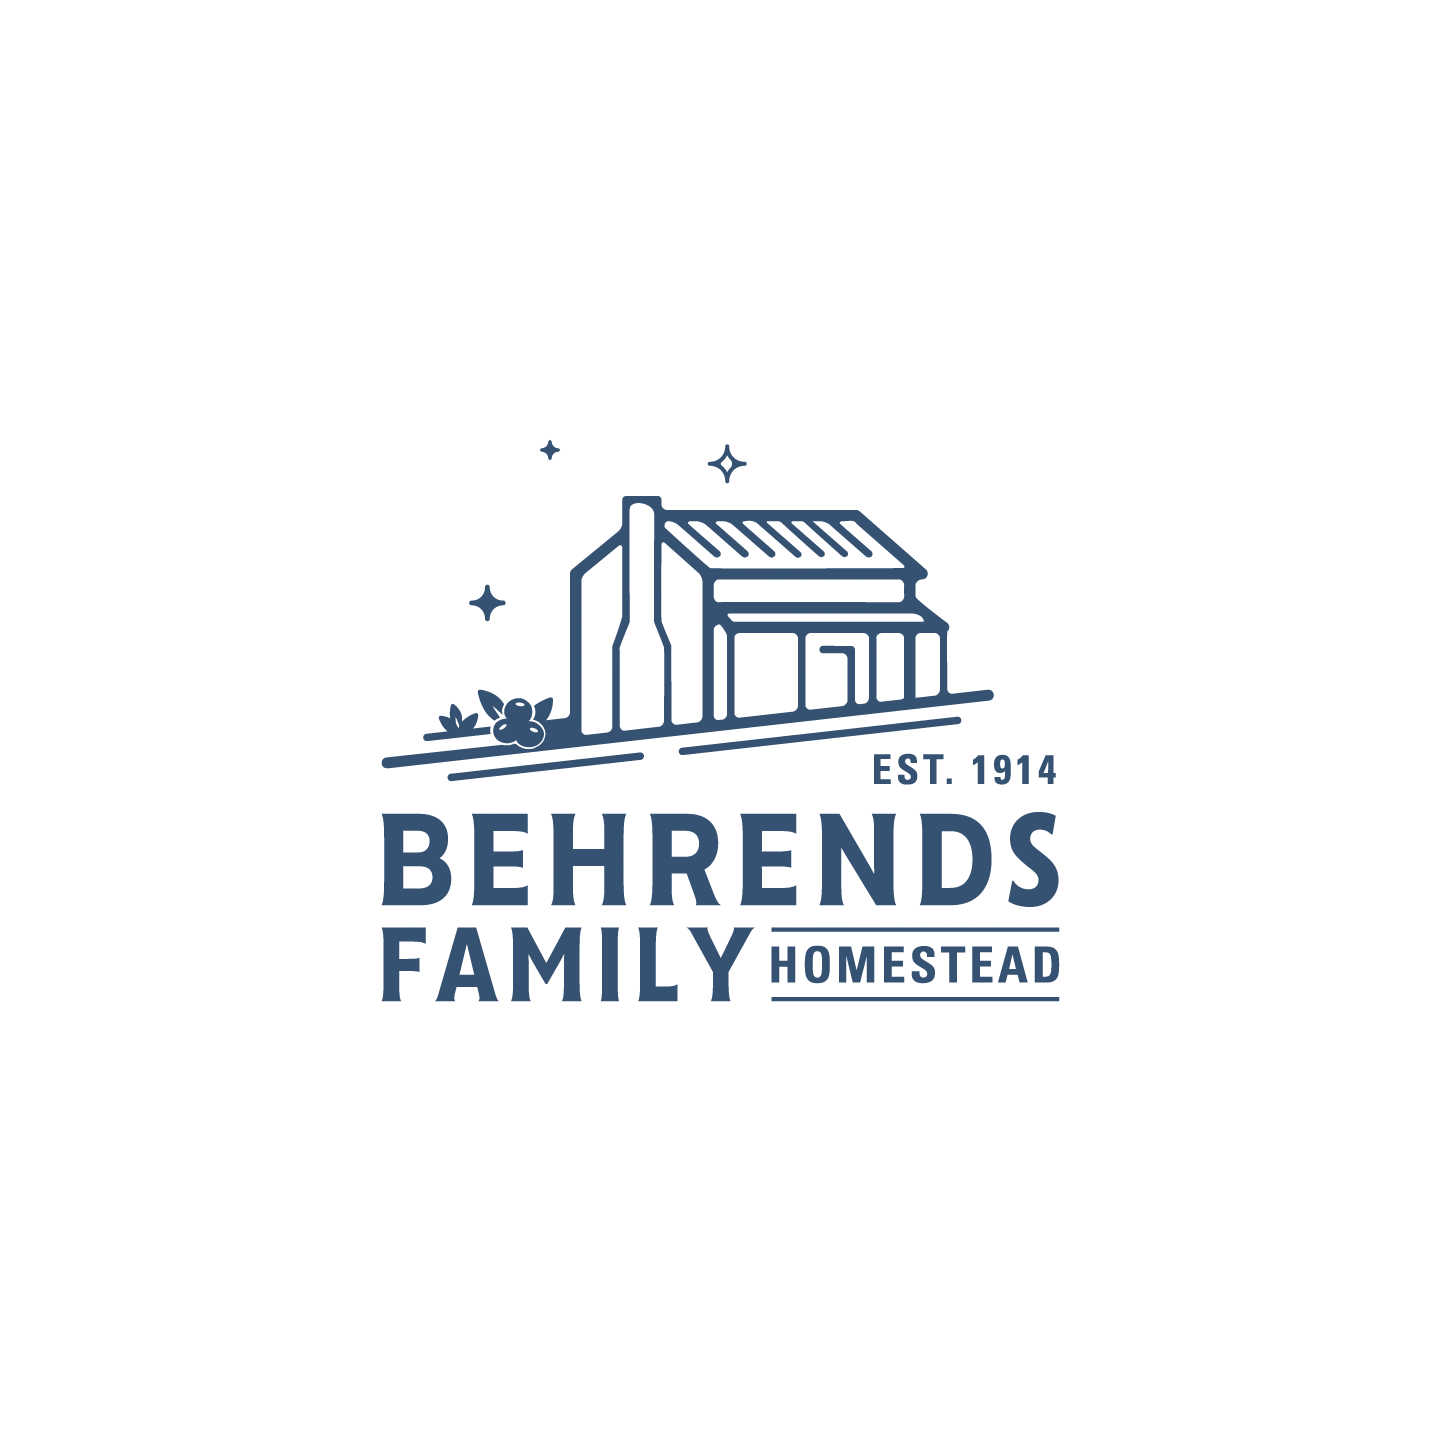 Behrends-Family-Homestead-Gradient.png